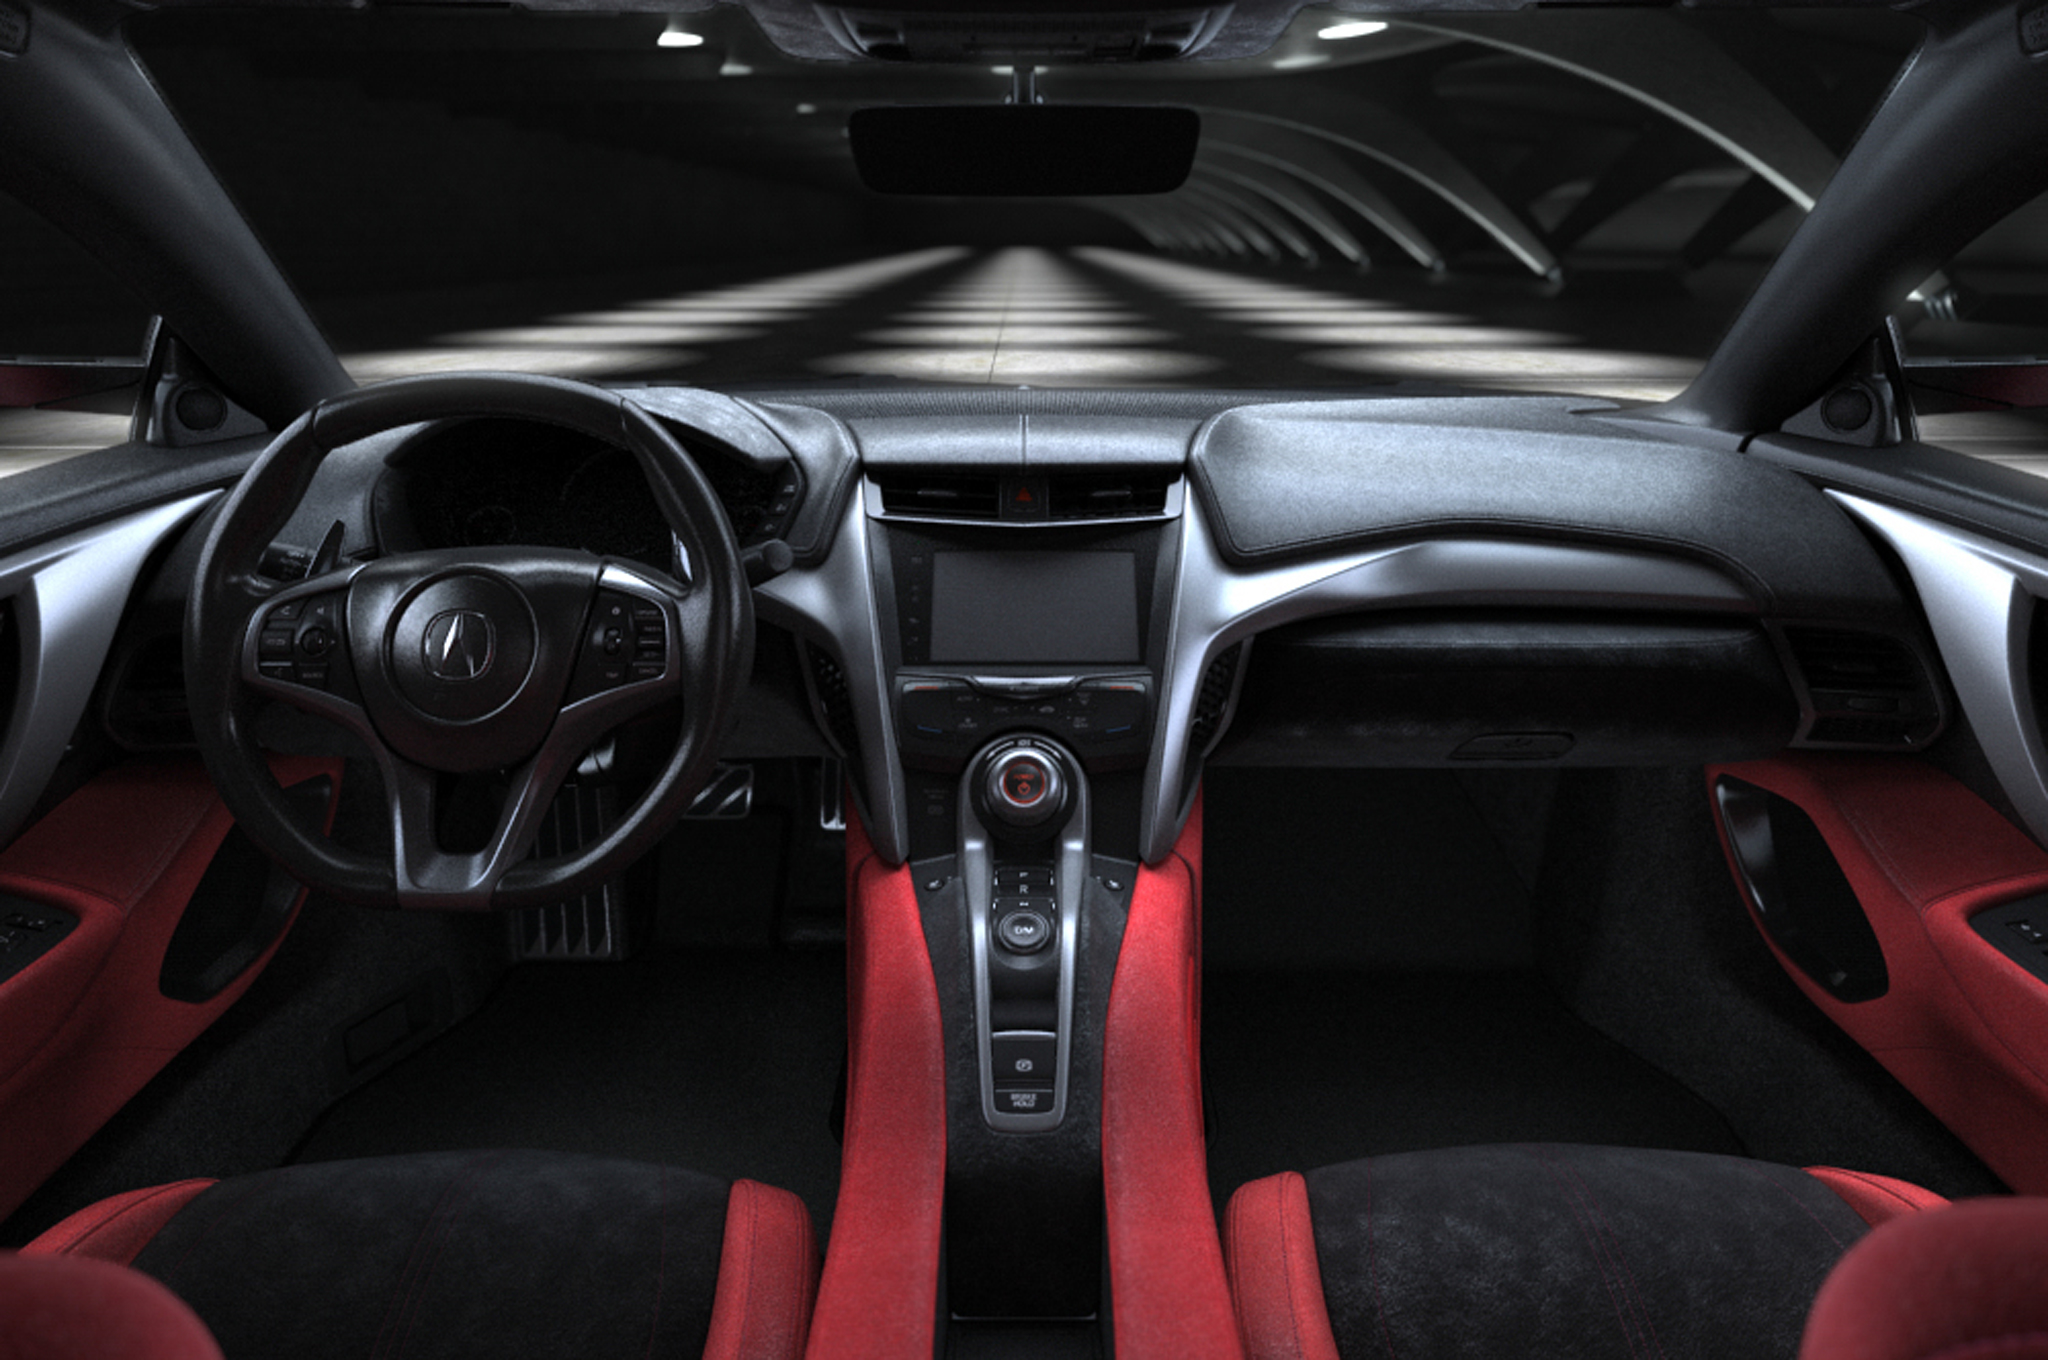 2016 Acura NSX Interior Dashboard